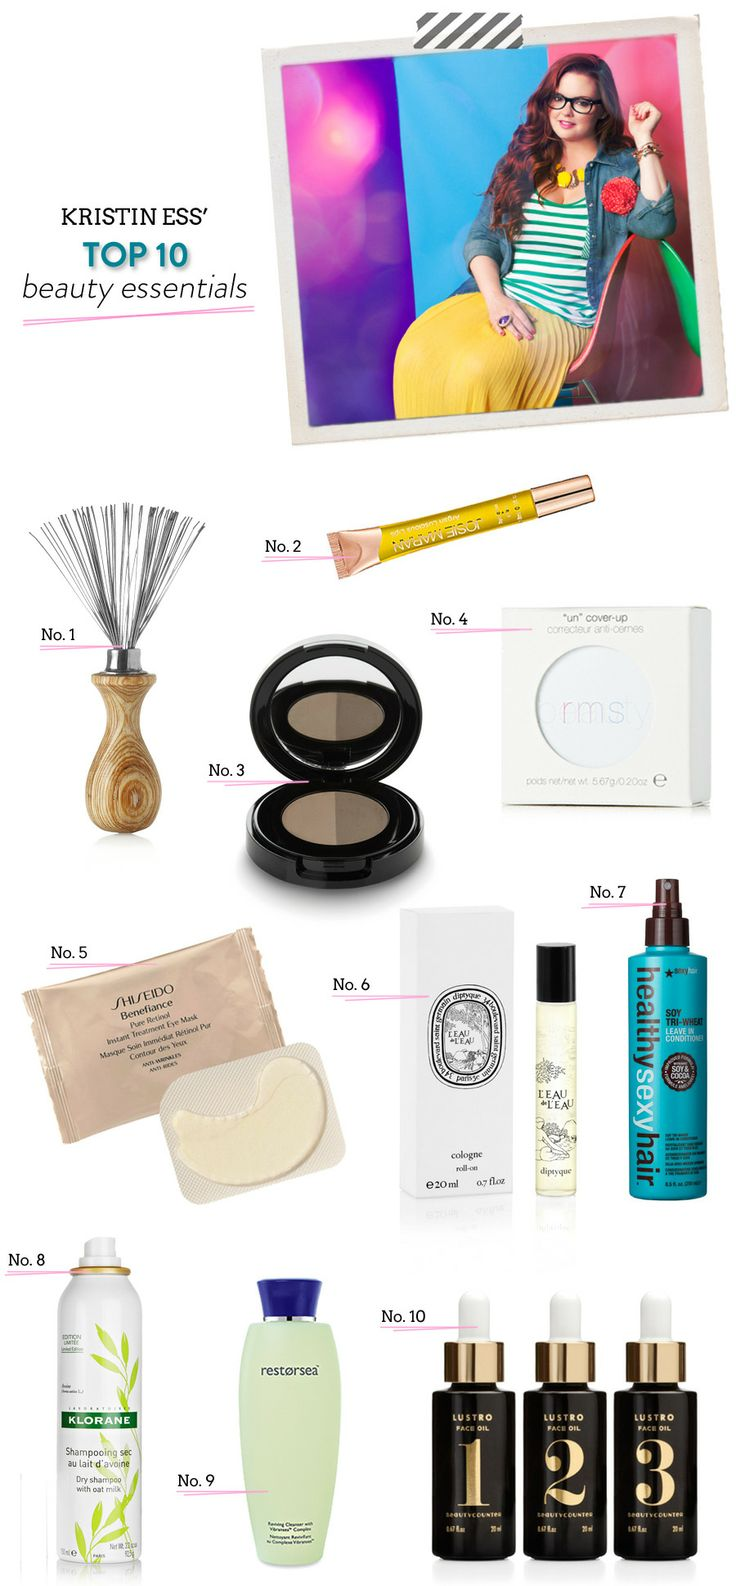 The Beauty Department & Kristin Ess' Top 10 Beauty Essentials |   Read more - http://www.stylemepretty.com/living/2013/07/25/the-beauty-department-kristin-ess-top-10-beauty-essentials/